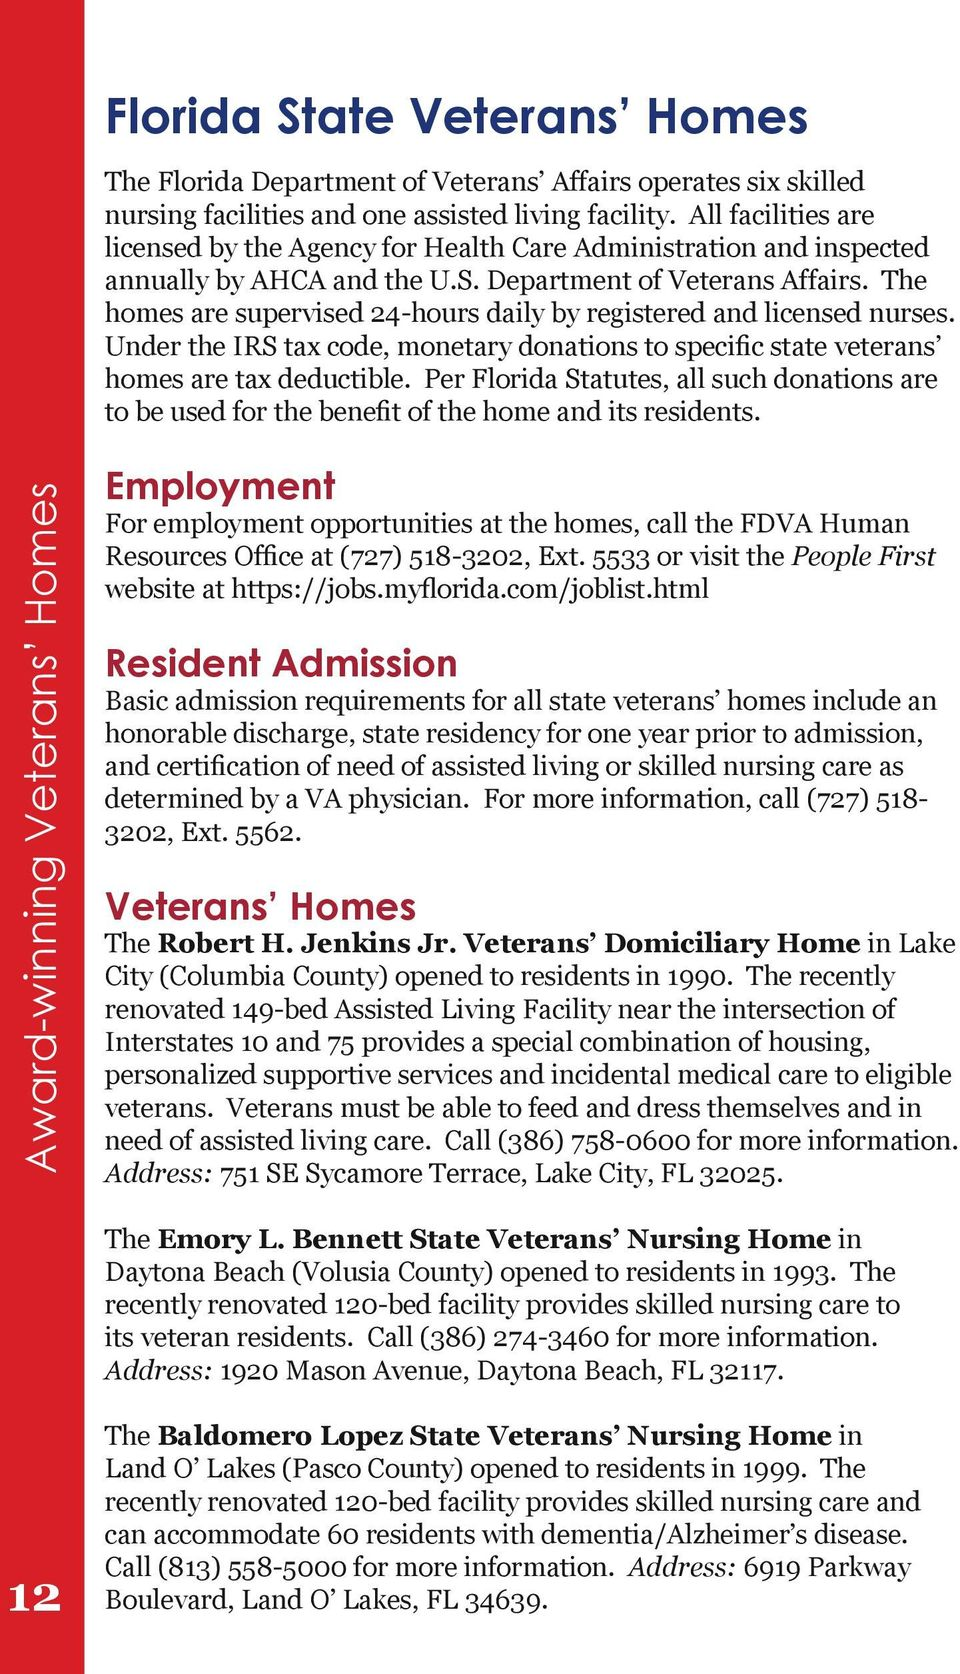 The homes are supervised 24-hours daily by registered and licensed nurses. Under the IRS tax code, monetary donations to specific state veterans homes are tax deductible.